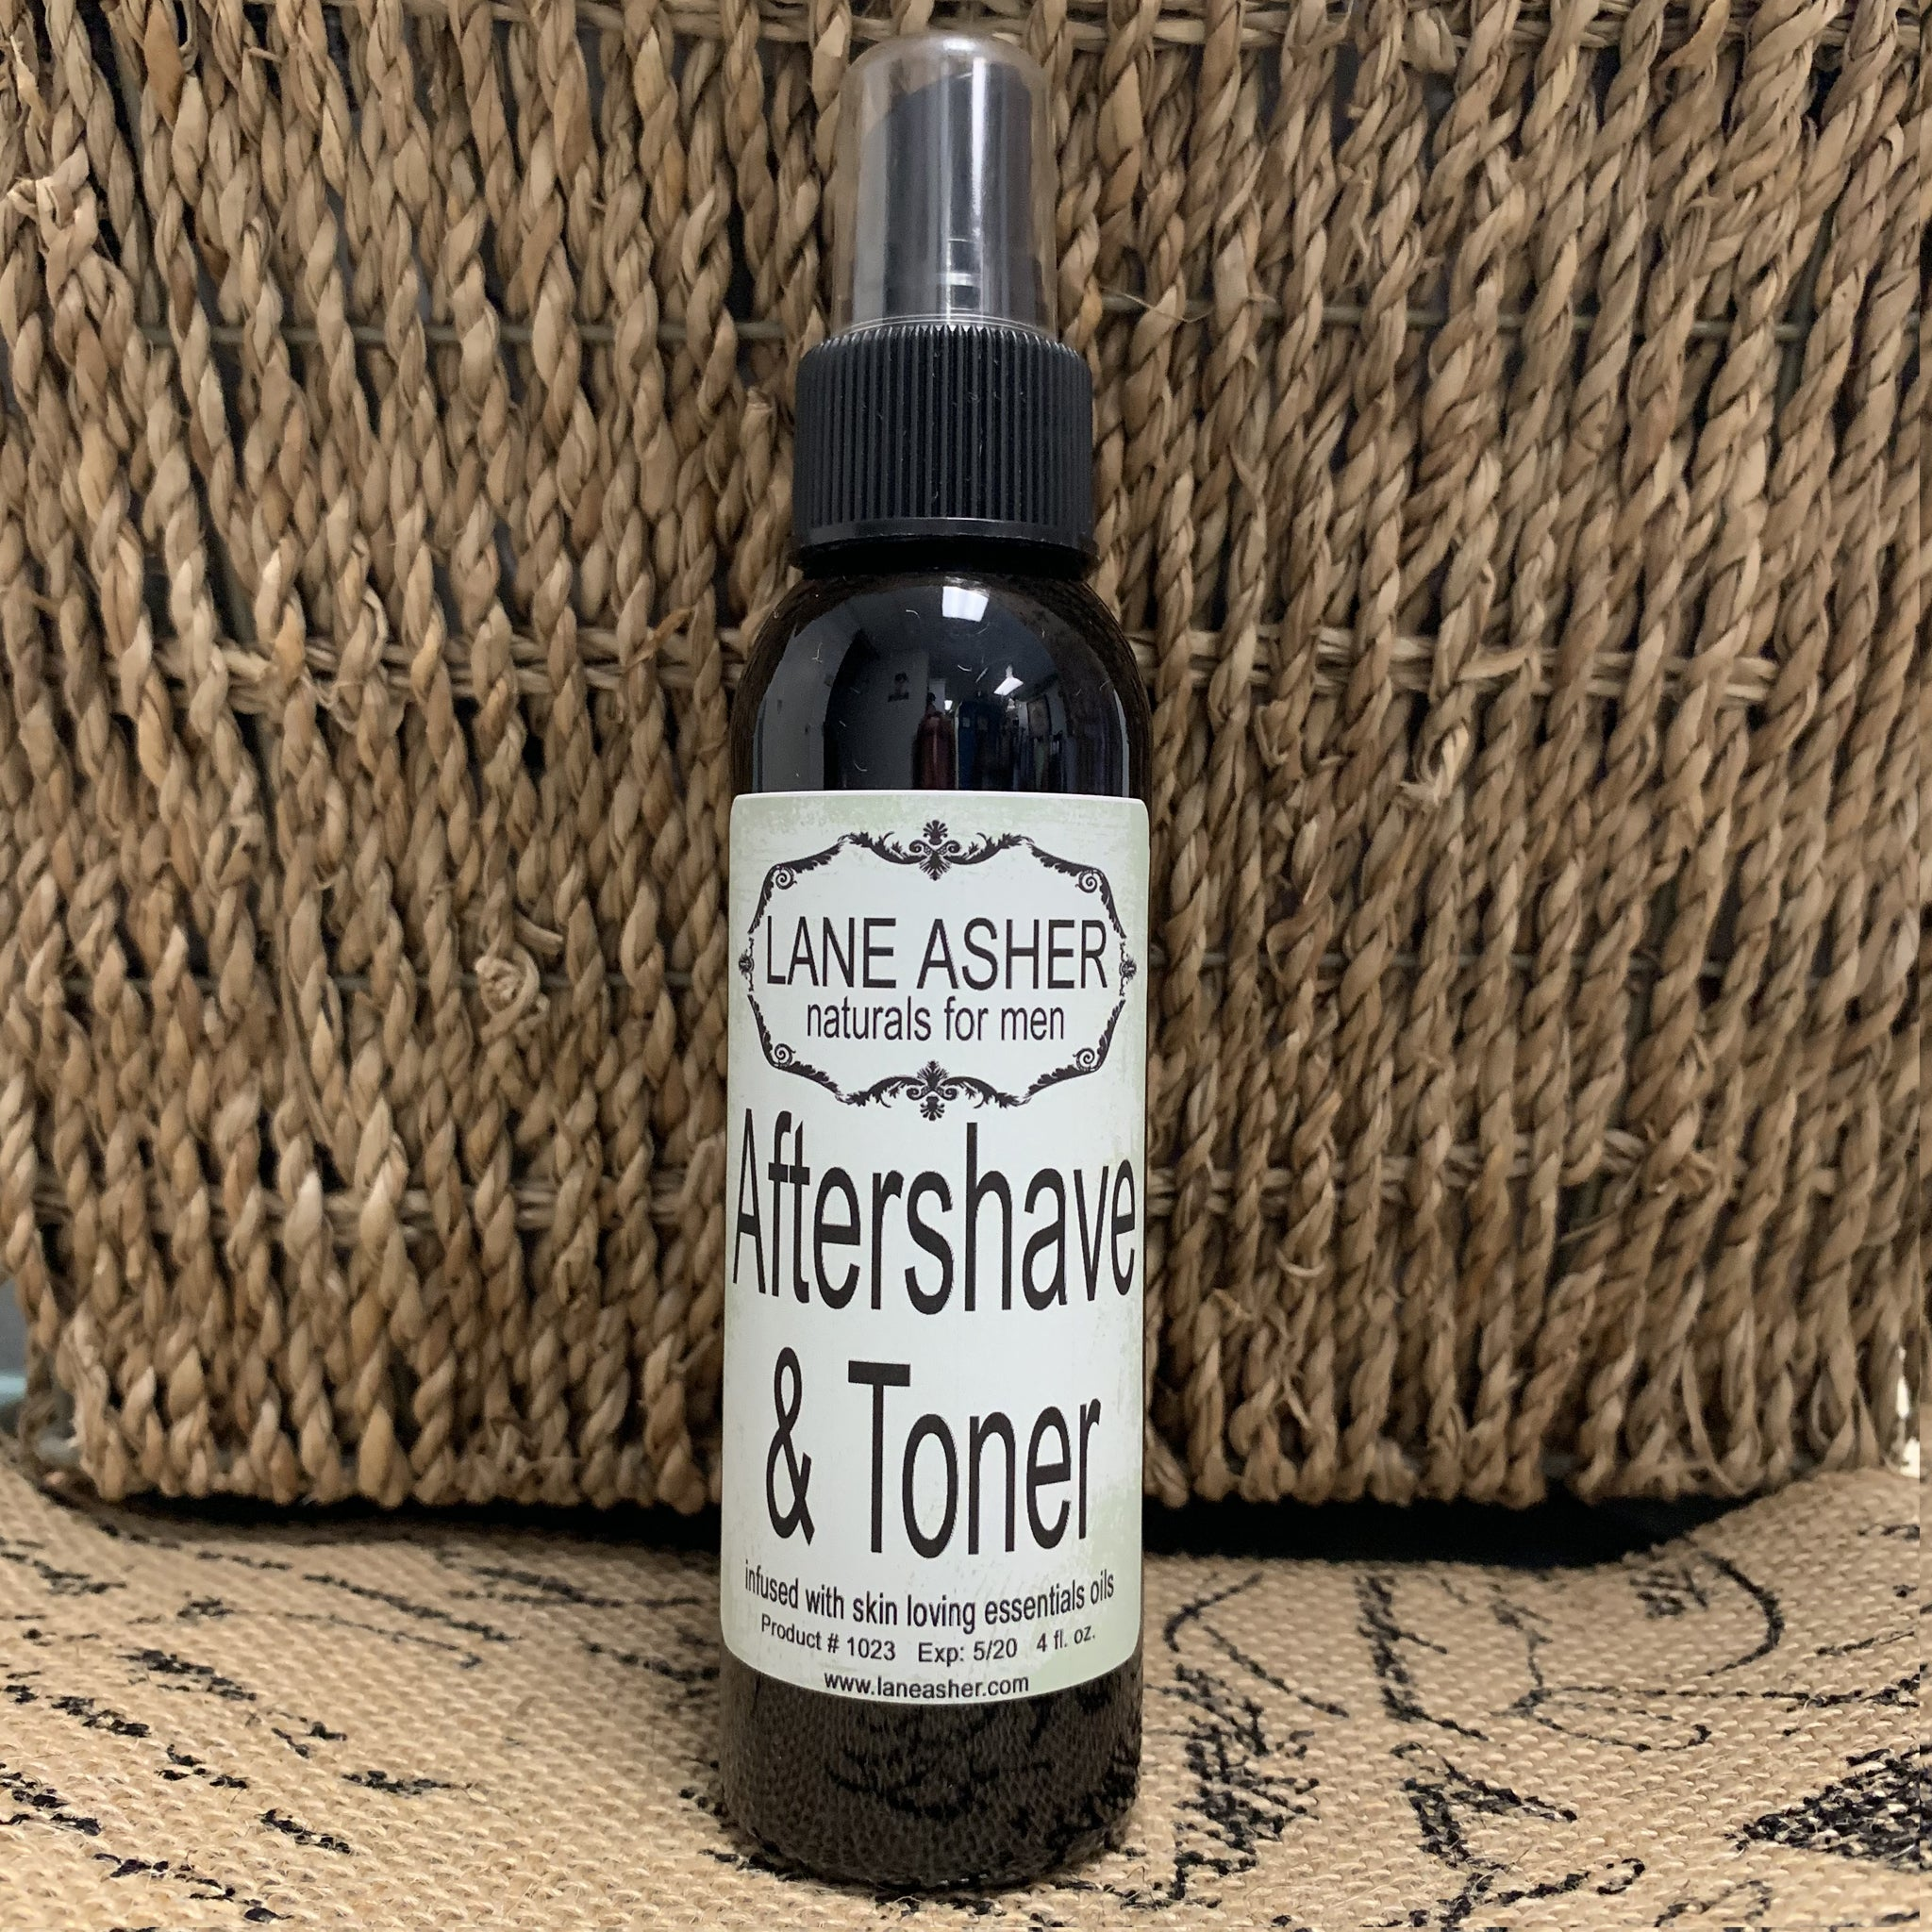 All Naturals Aftershave and Face Toner